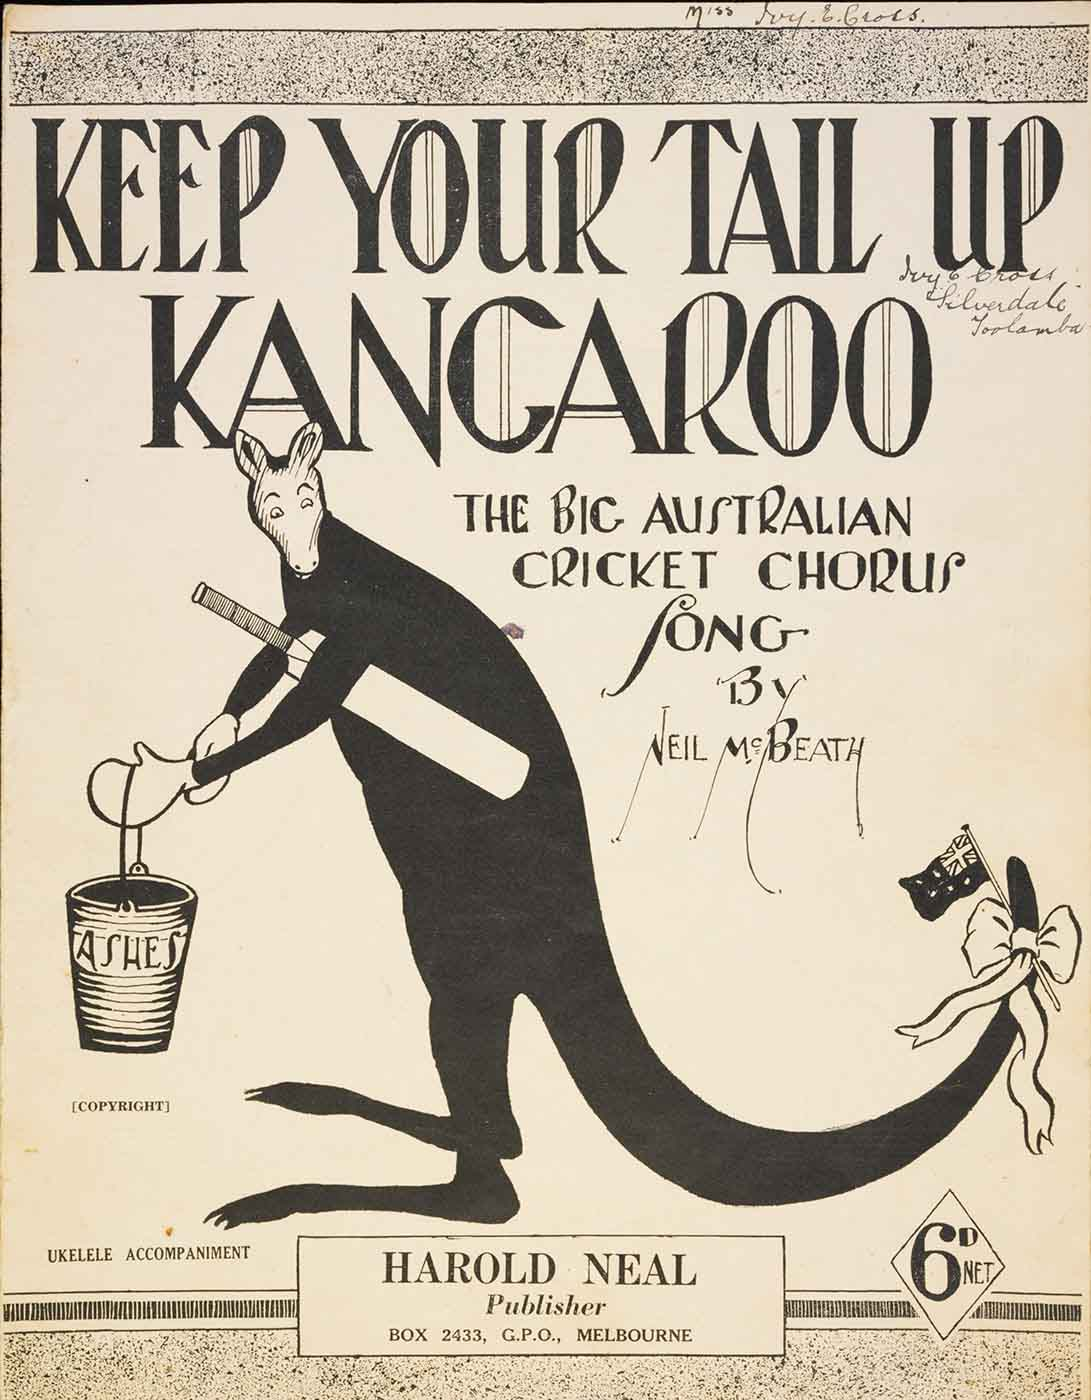 Black and white cover image showing a cartoon kangaroo wearing boxing gloves and carrying a bucket with 'Ashes' written on it. The kangaroo has a cricket bat tucked under his arm and an Australian flag tied to this tail. 'Keep Your Tail Up Kangaroo' is printed at the top of the page, followed by 'The Big Australian Cricket Chorus Song by Neil McBeath'. - click to view larger image